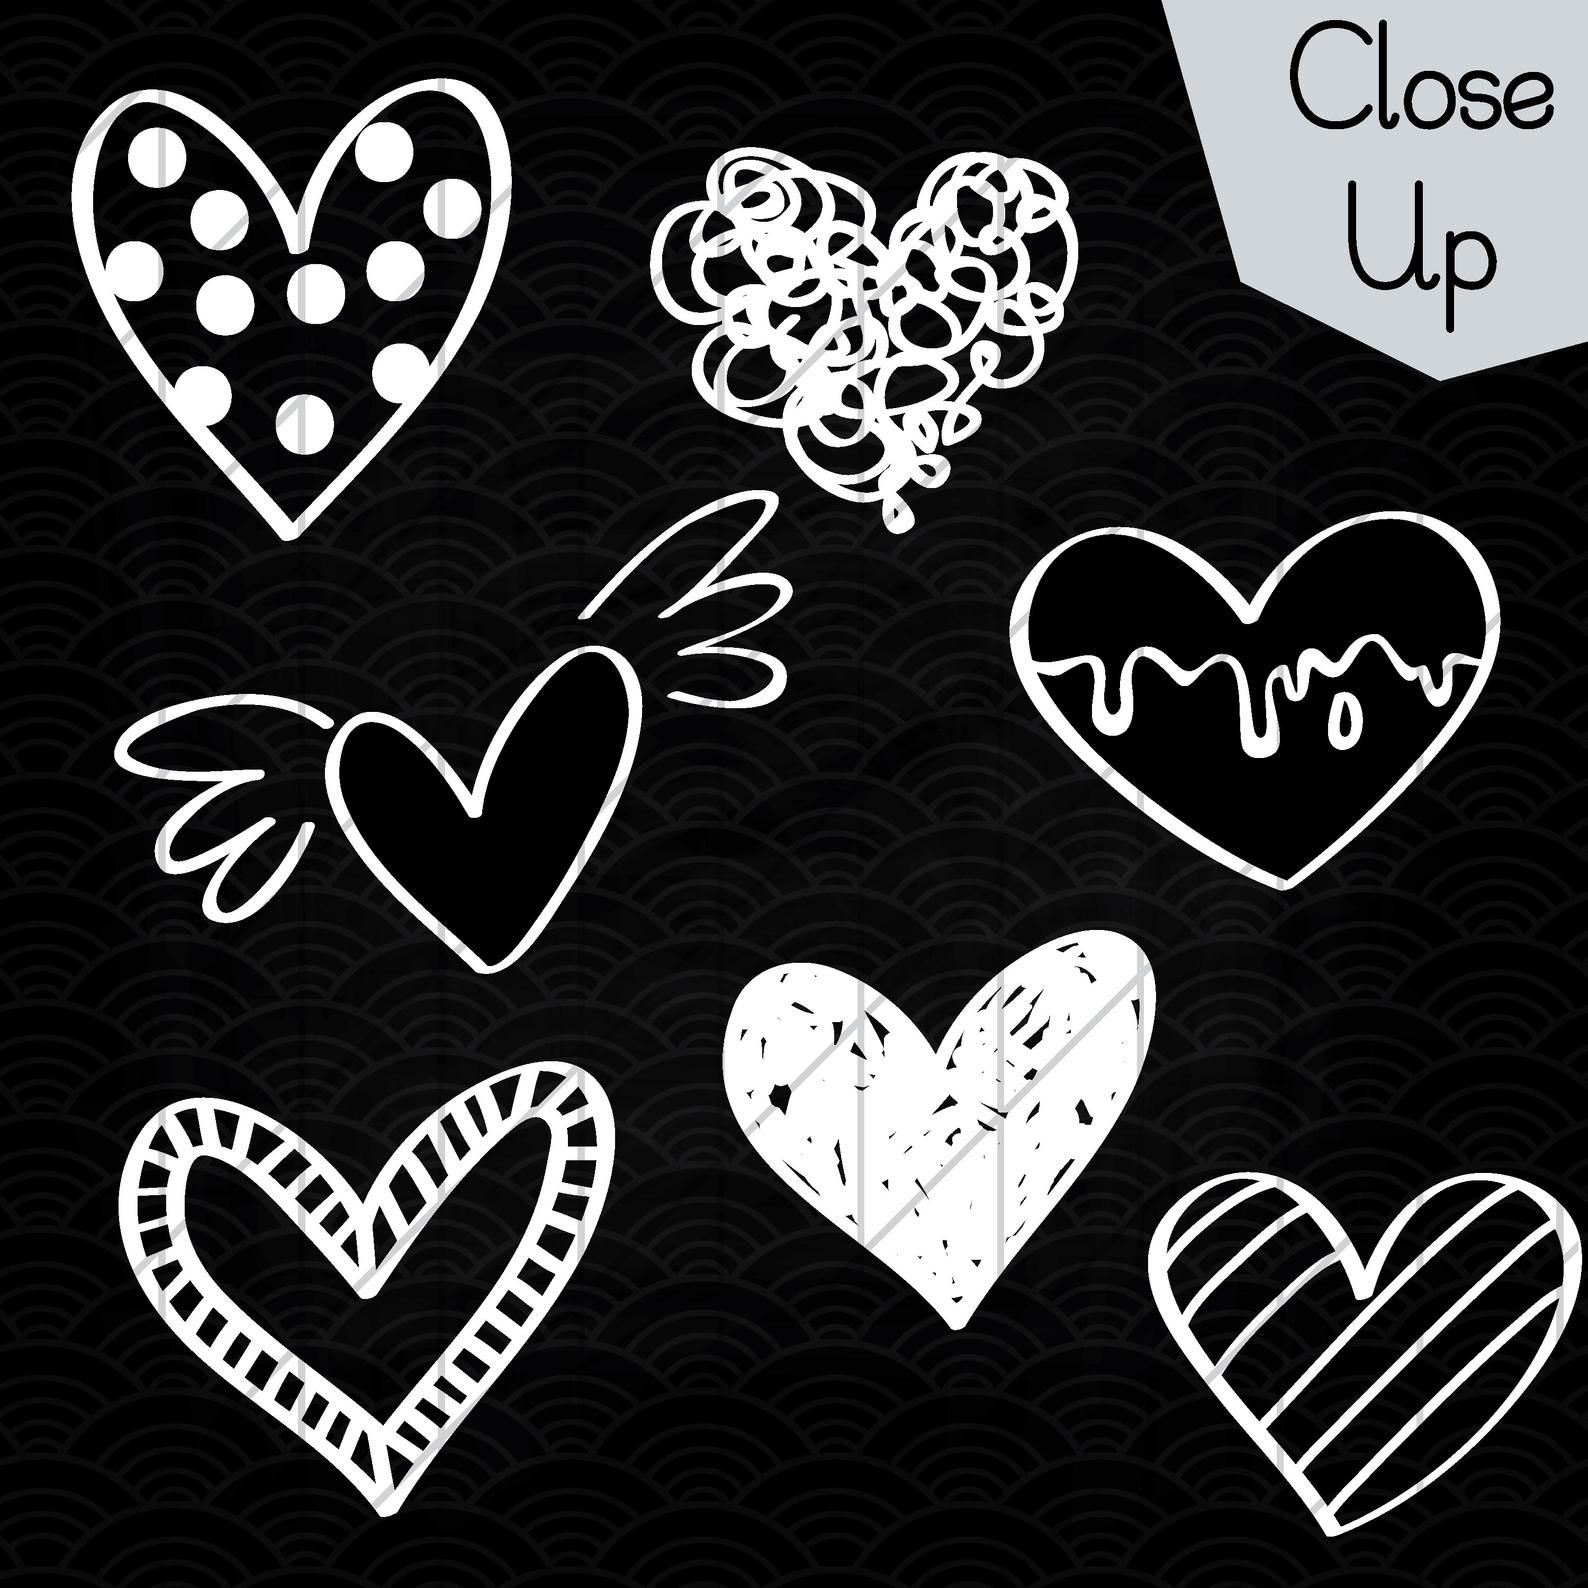 52 White Hearts Outline Clip Art Hand Drawn Romance Vector